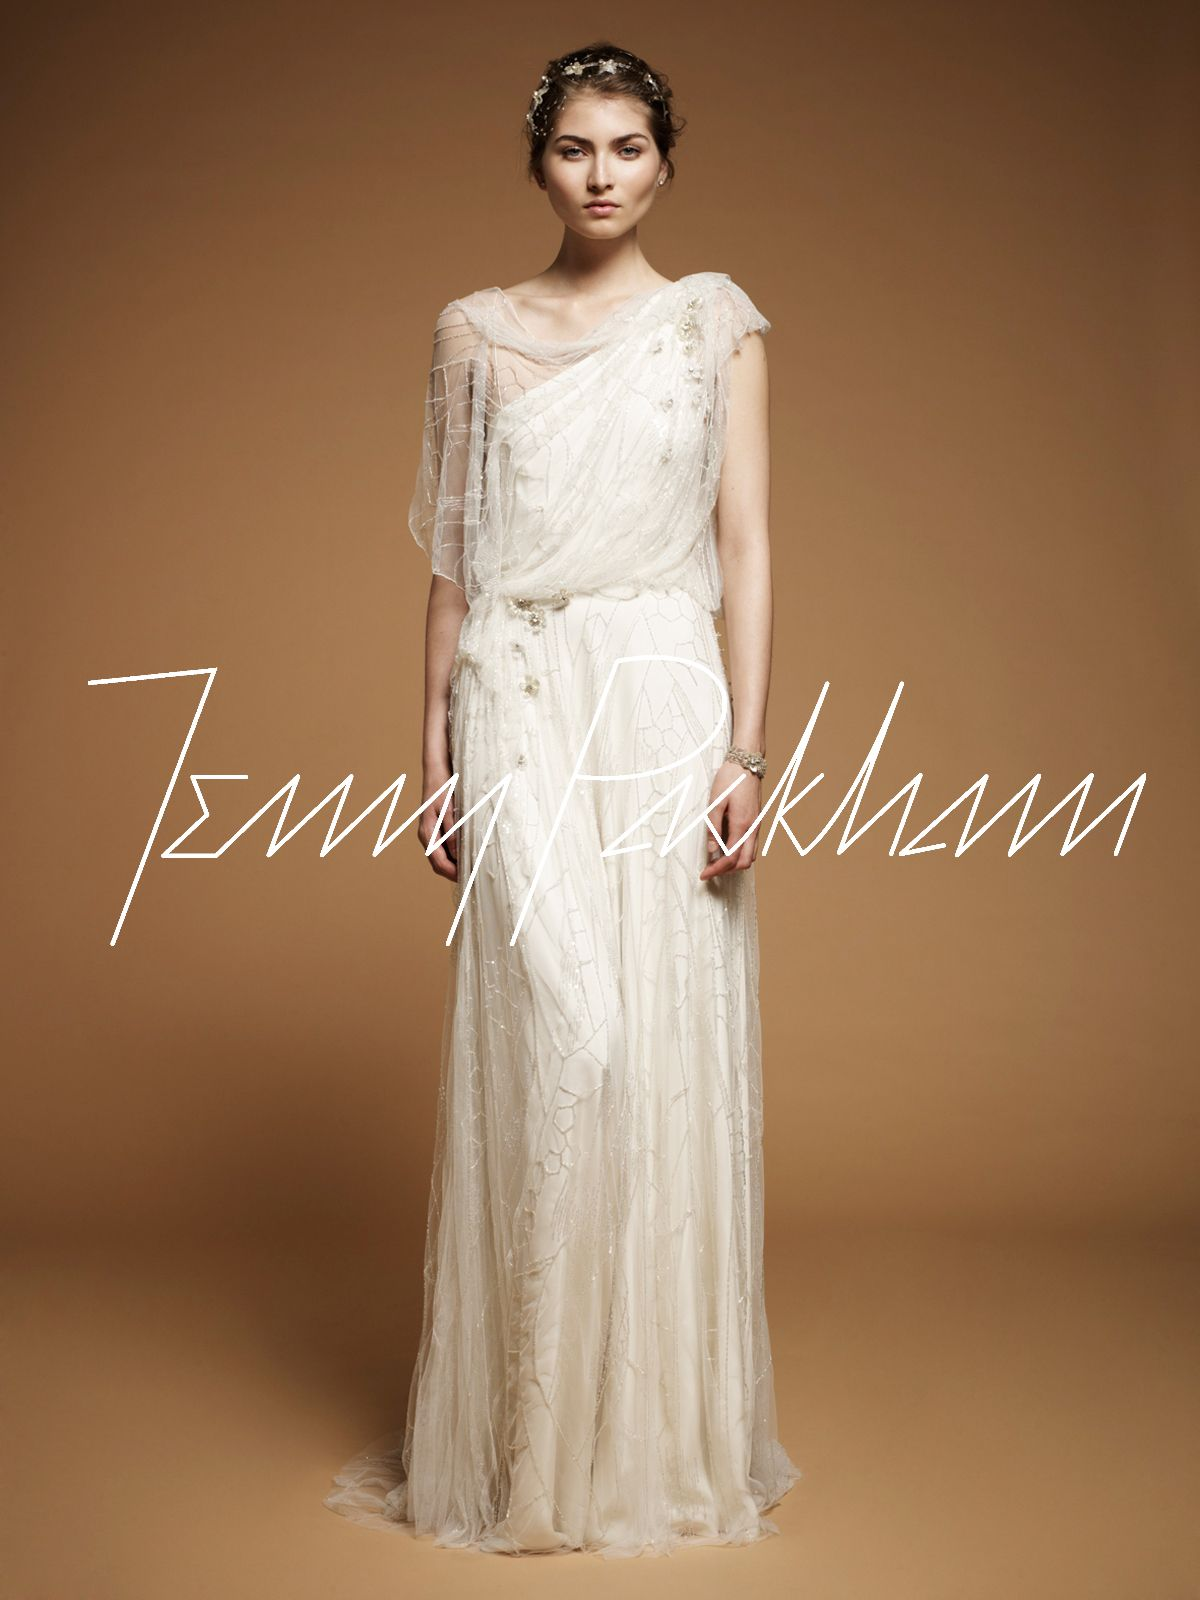 Jenny packhamgorgeous itus an obsession not an issue